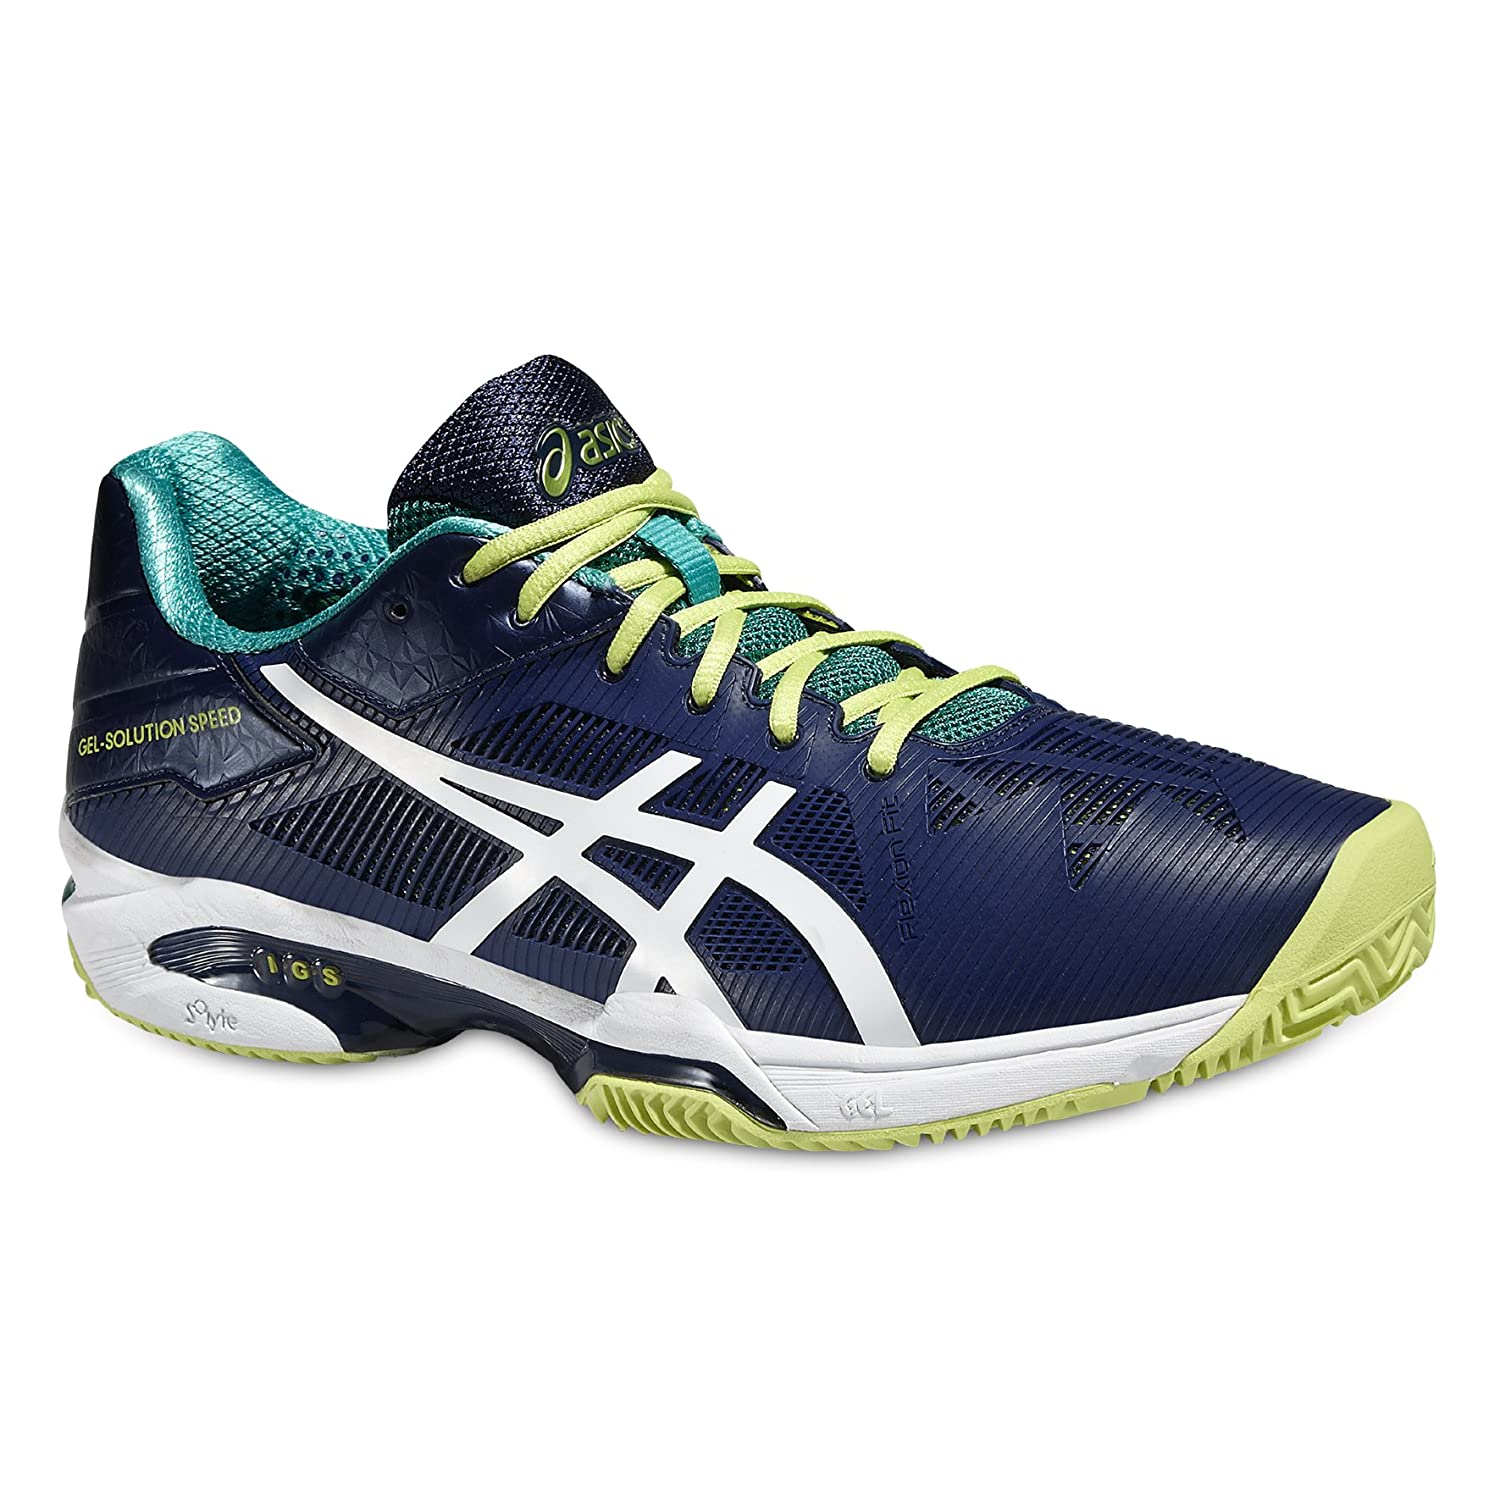 ASICS Gel-Solution Speed 2 Clay Mens Tennis Shoes E601N Sneakers Trainers B018J7196O 10.5 D(M) US|Indigo Blue White 5001